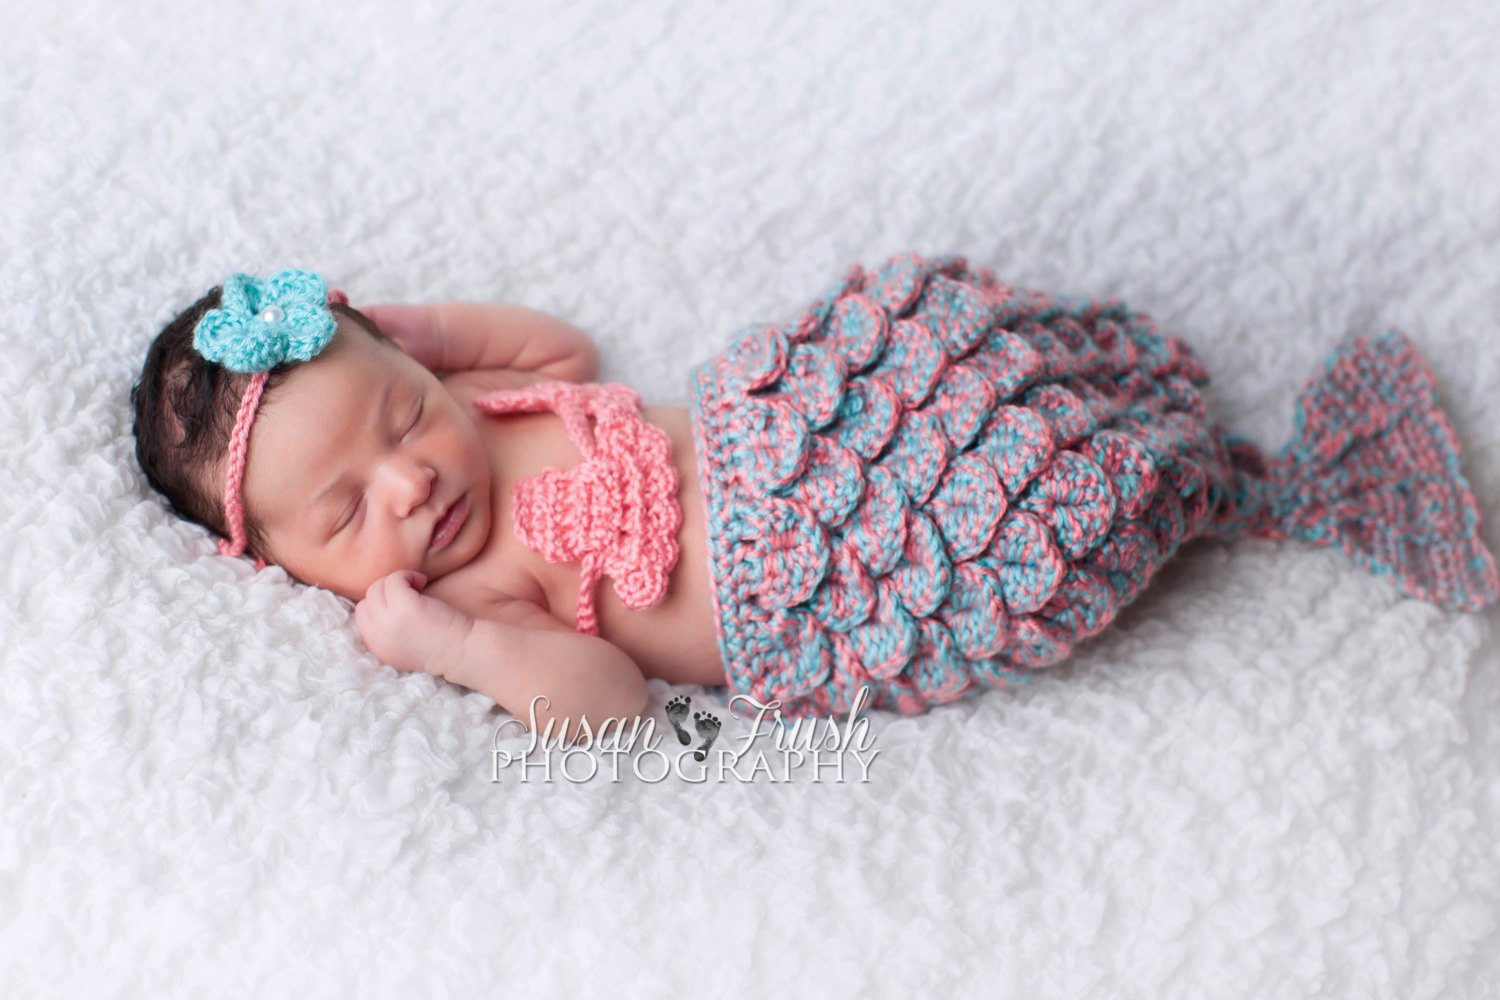 Crochet Mermaid Baby Outfit Inspirational Crocheted Mermaid Tail Newborn Mermaid Outfit Baby Prop Of Great 49 Pics Crochet Mermaid Baby Outfit